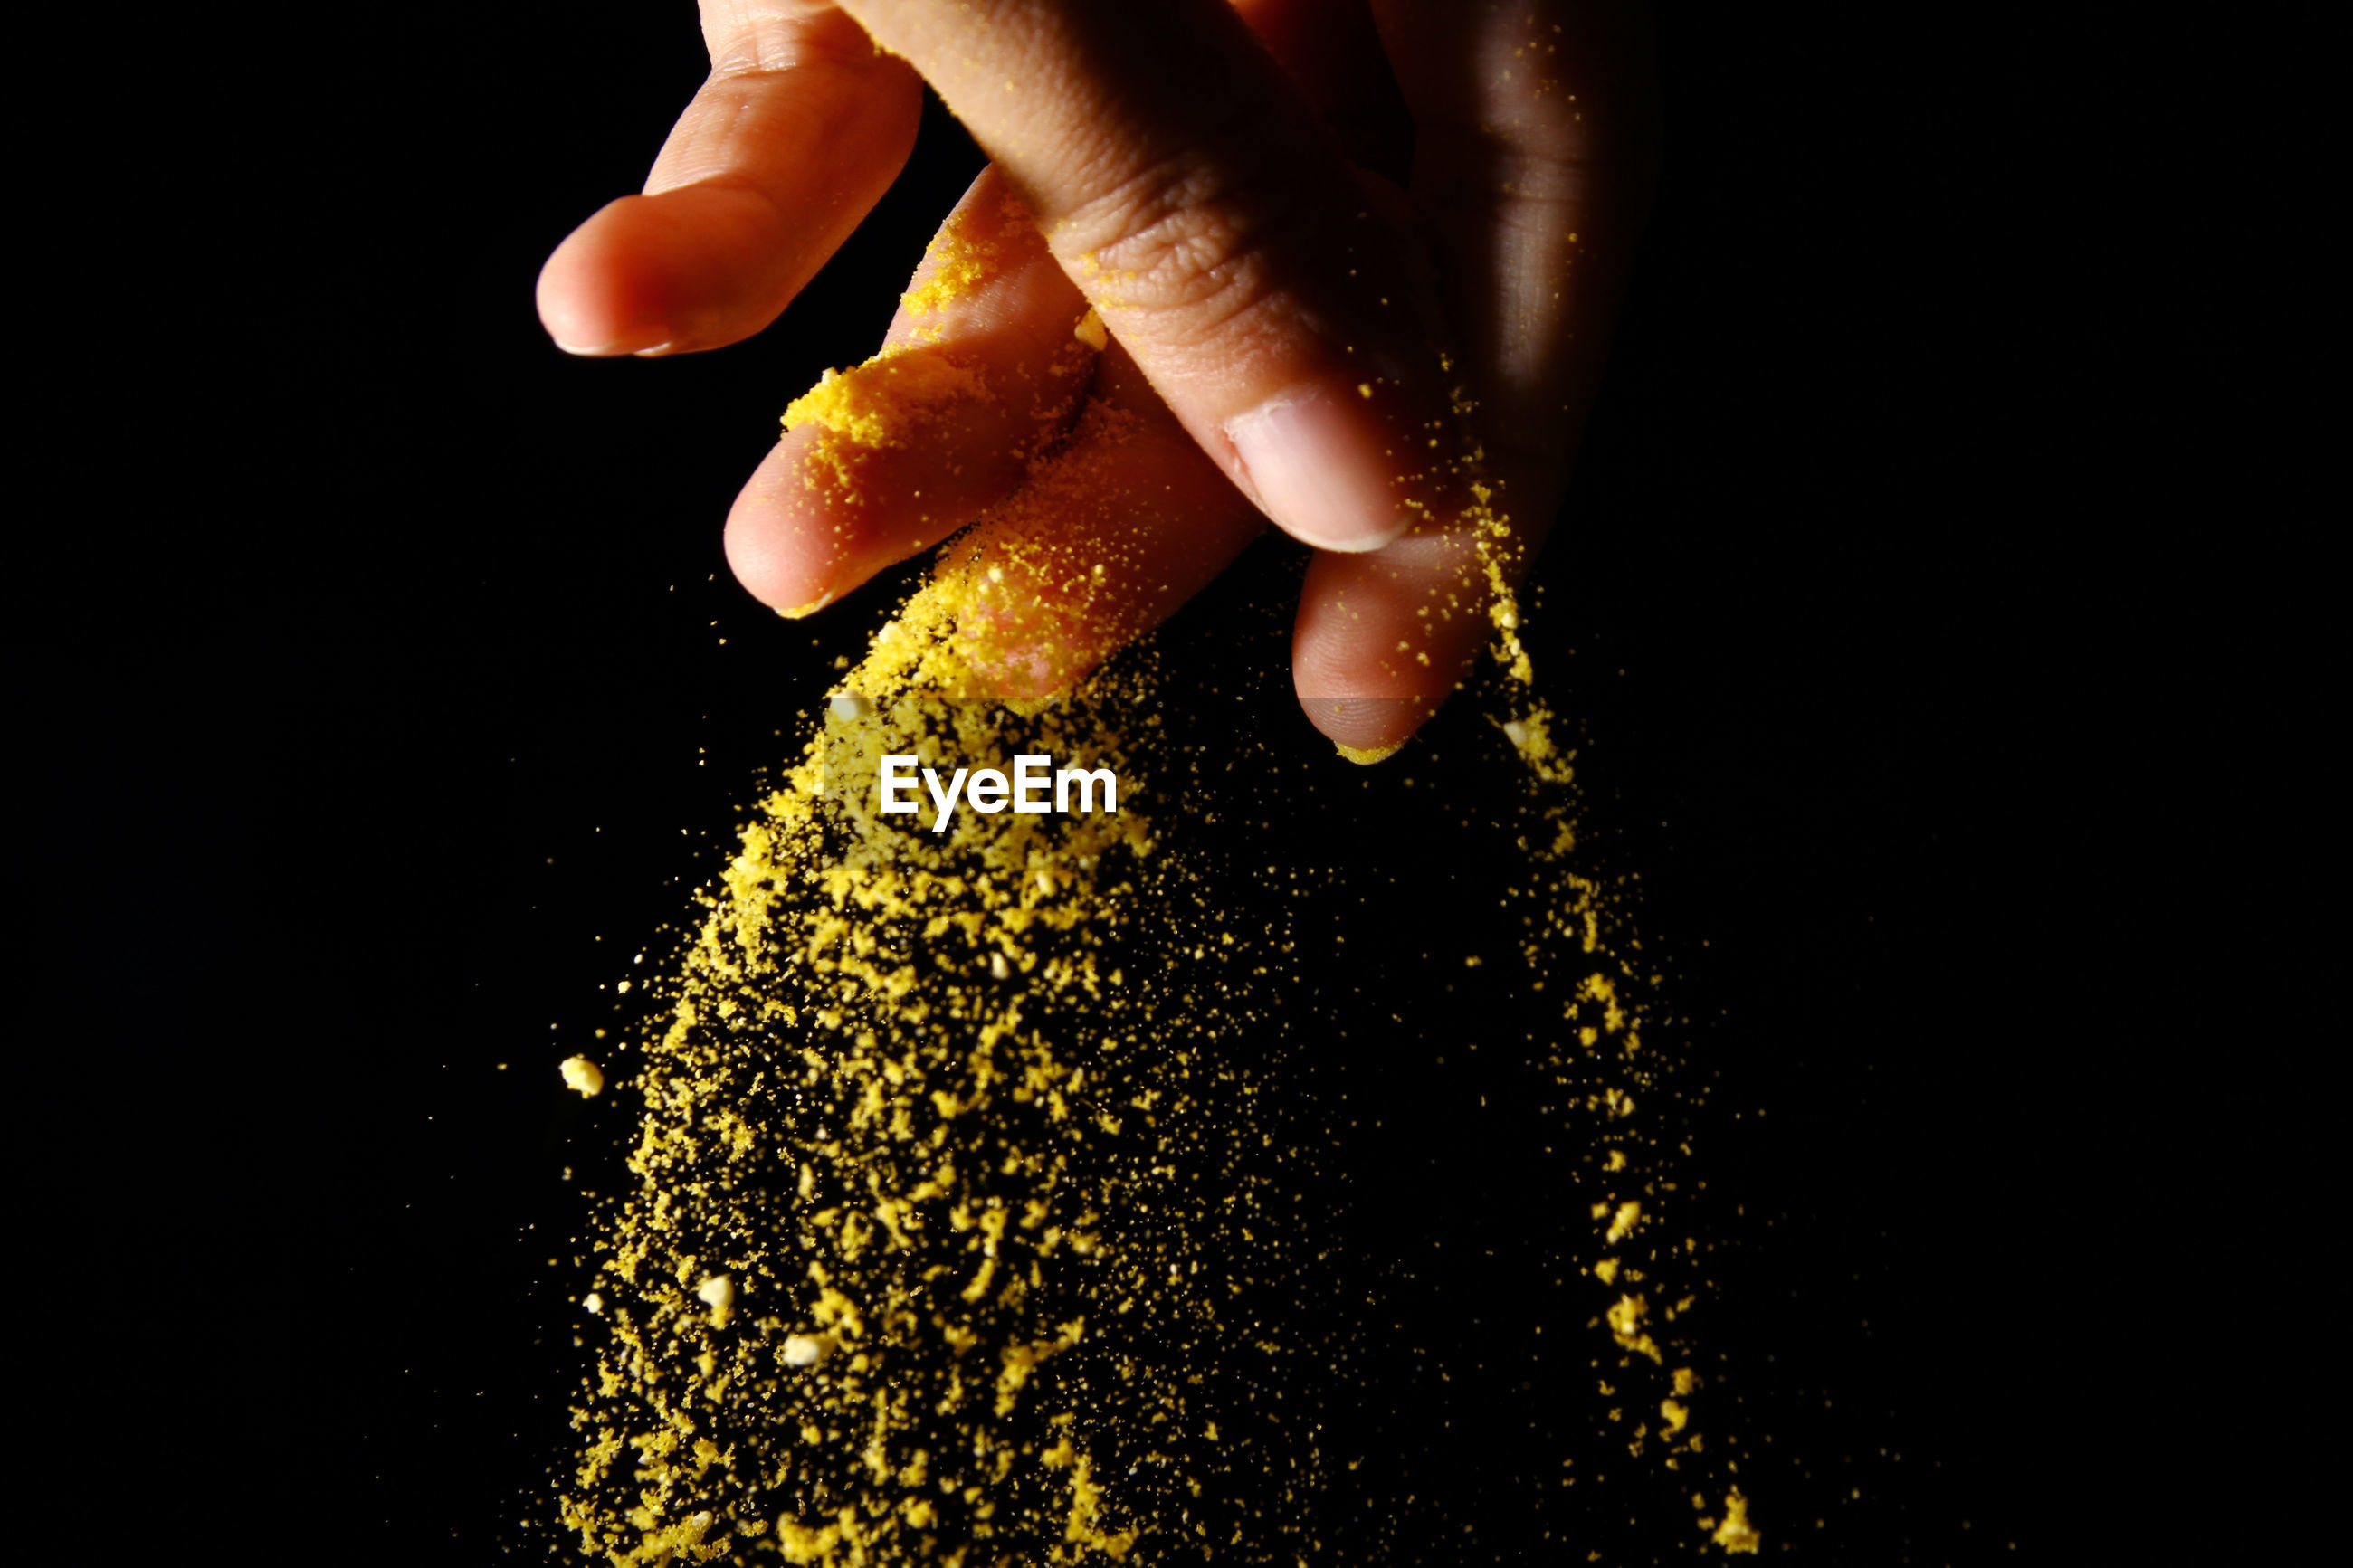 Close-up of hand sprinkling powder paint against black background